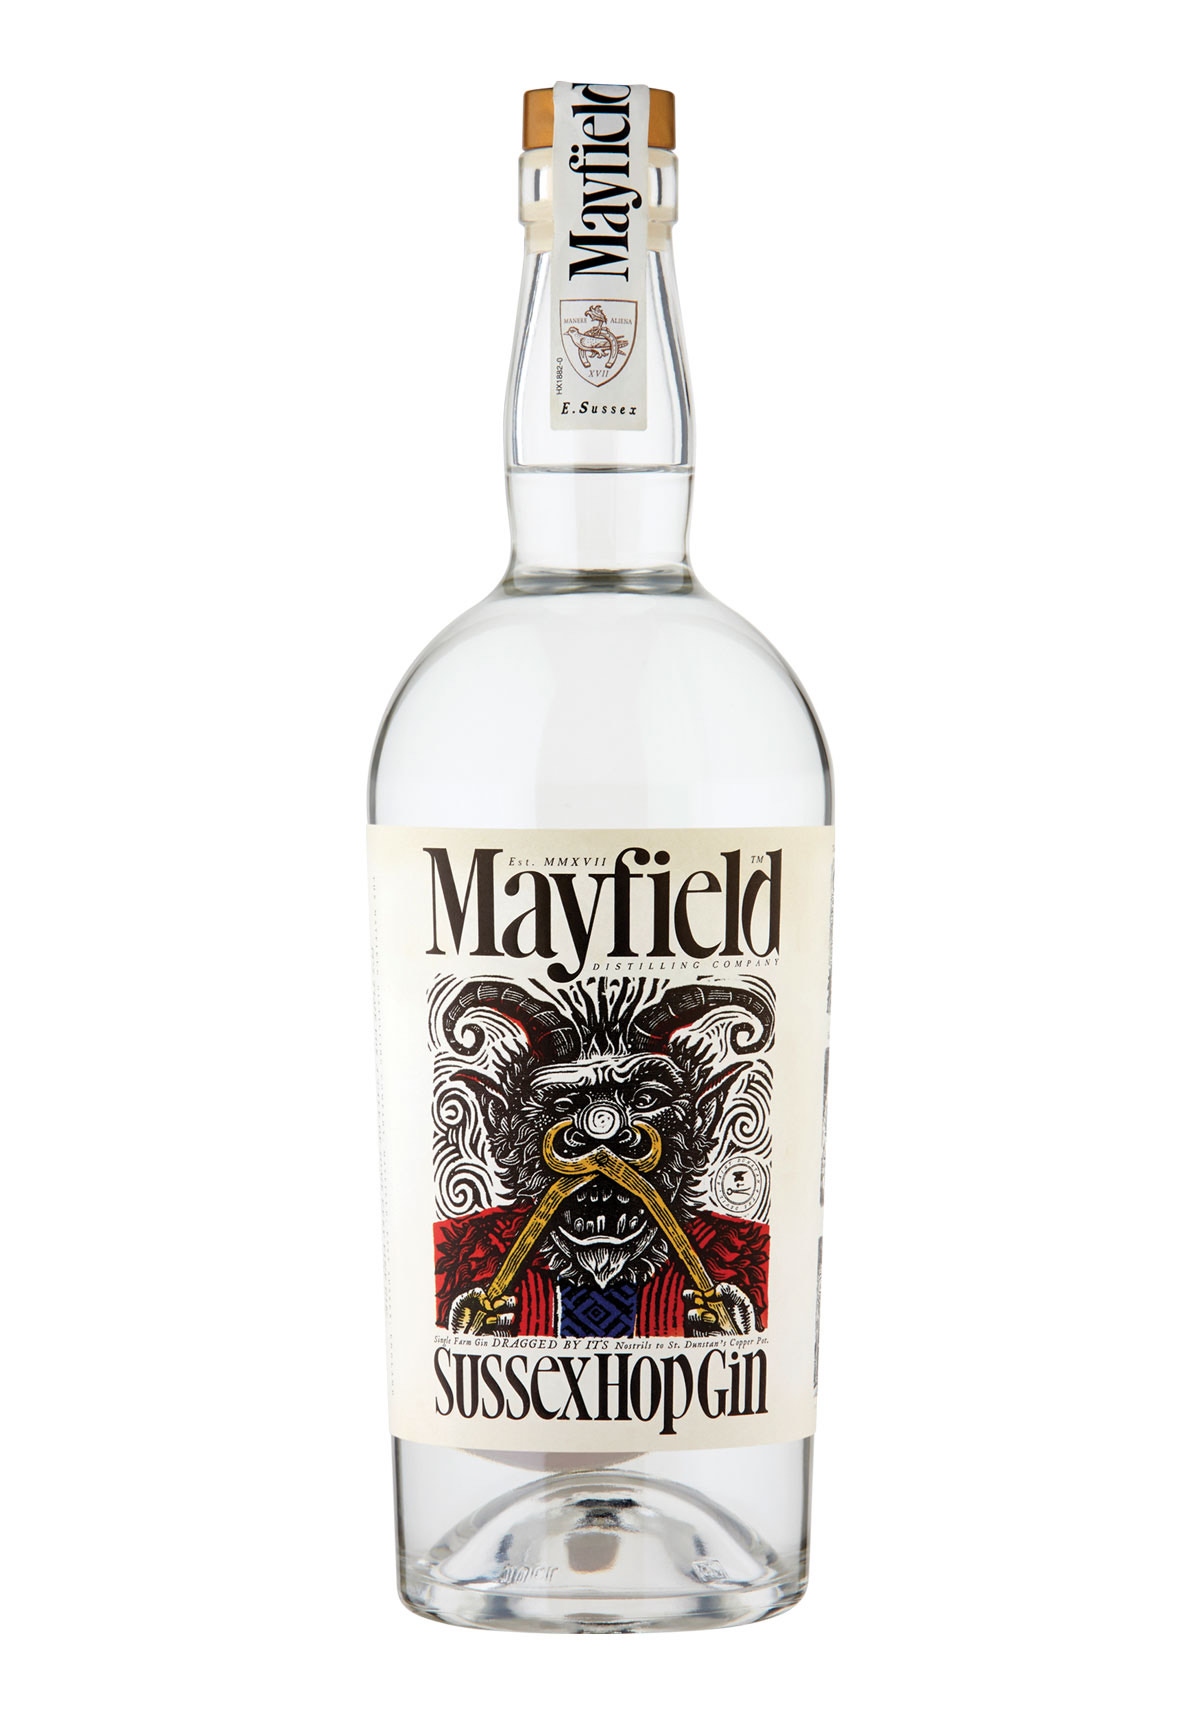 Best small batch gins, Mayfield Sussex Hop Gin